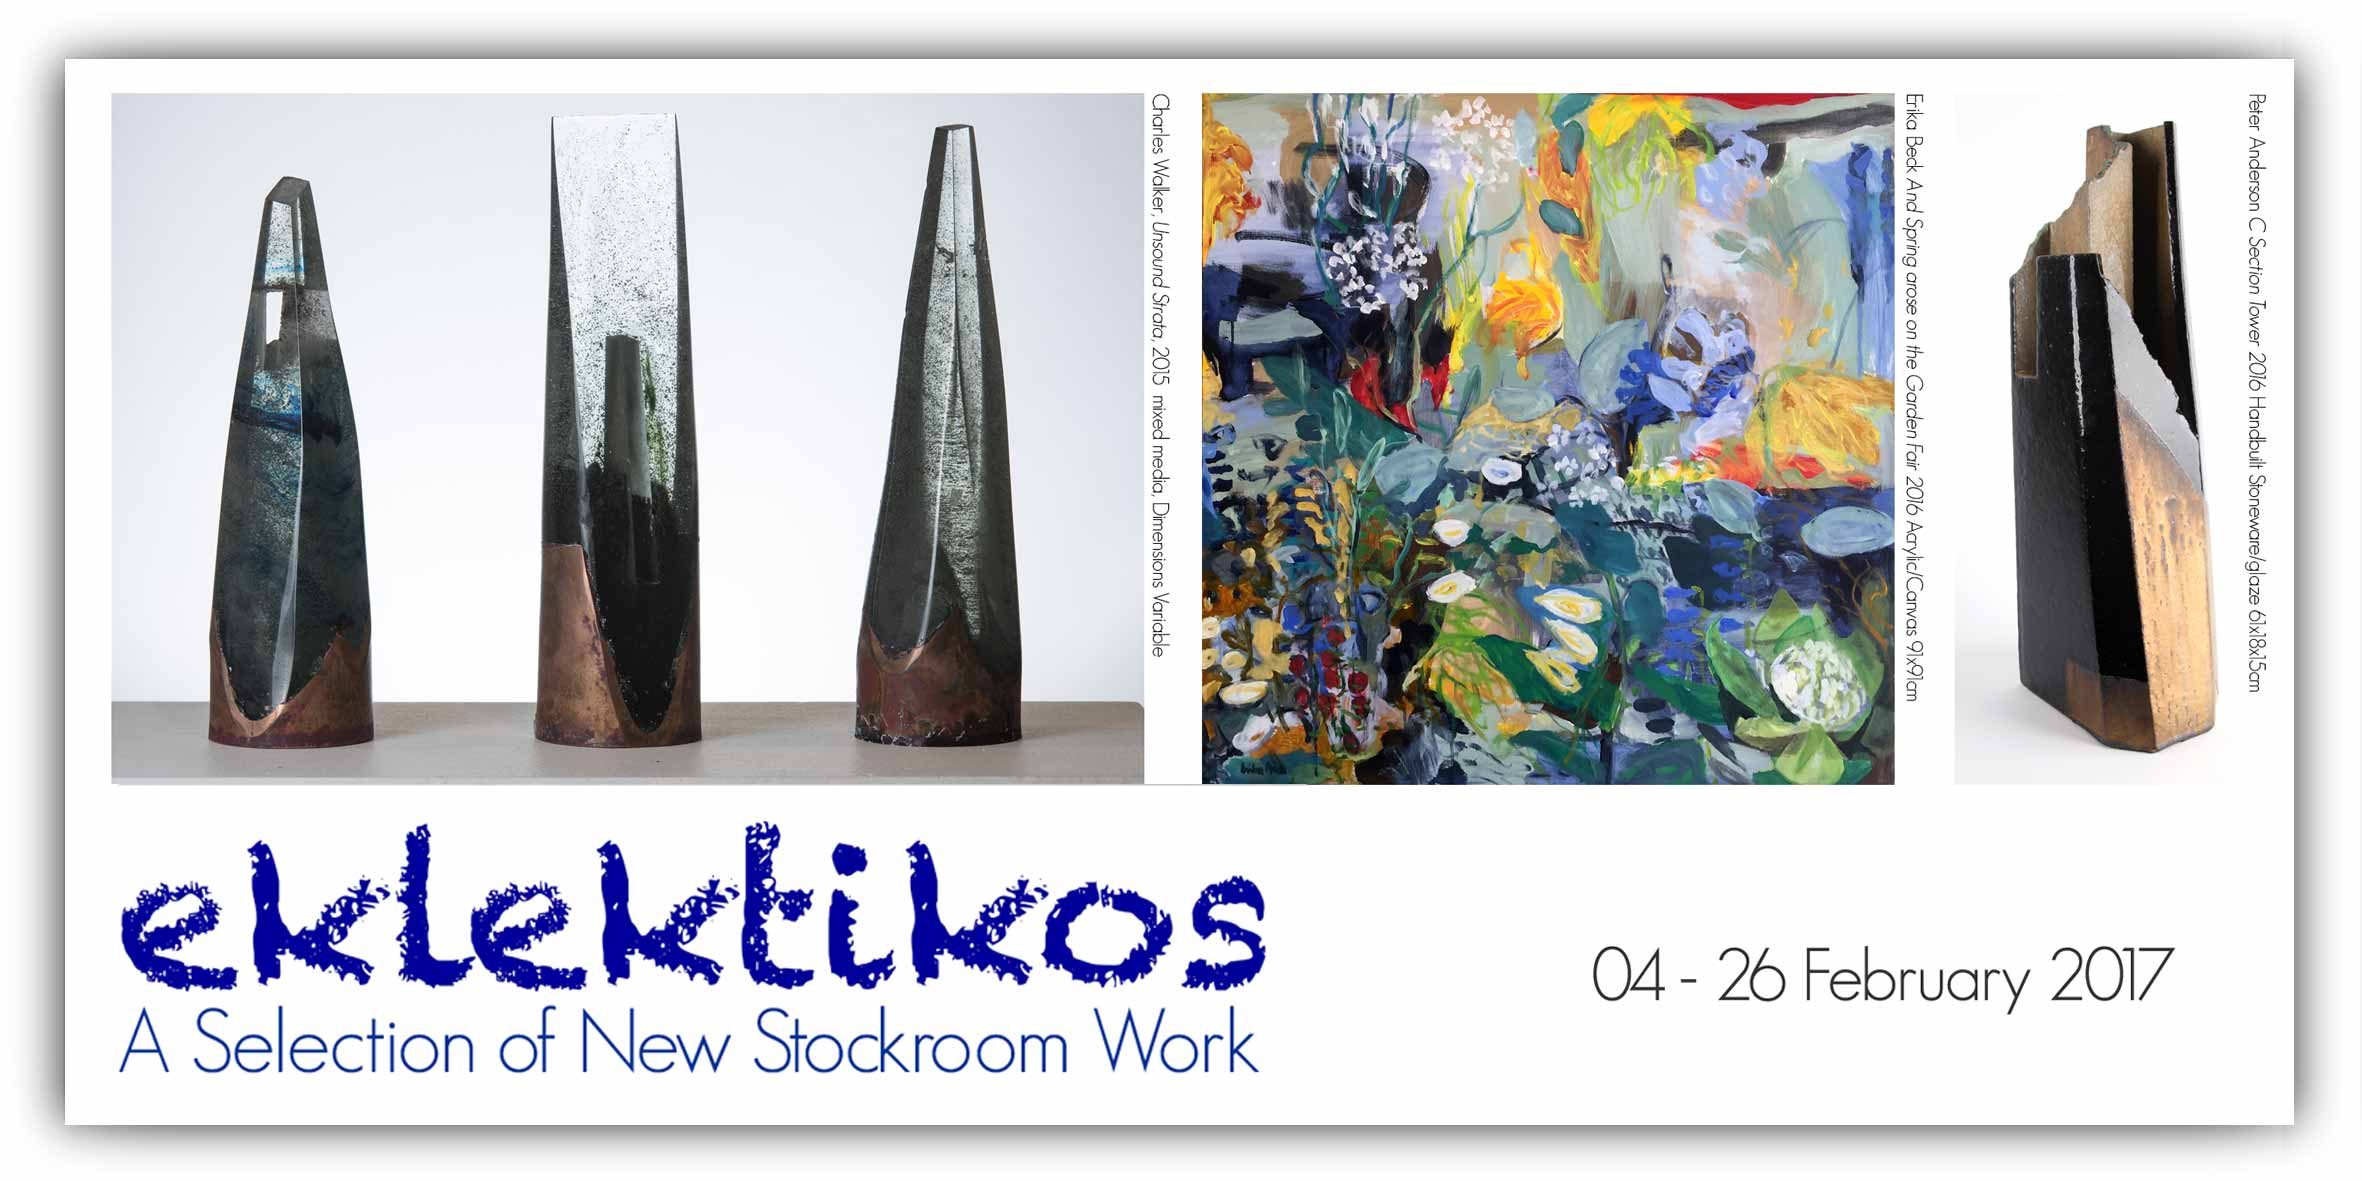 Artsite Gallery new Stockroom Work Exhibition. Artsite Gallery Gallery_2, 04-26 February 2017.